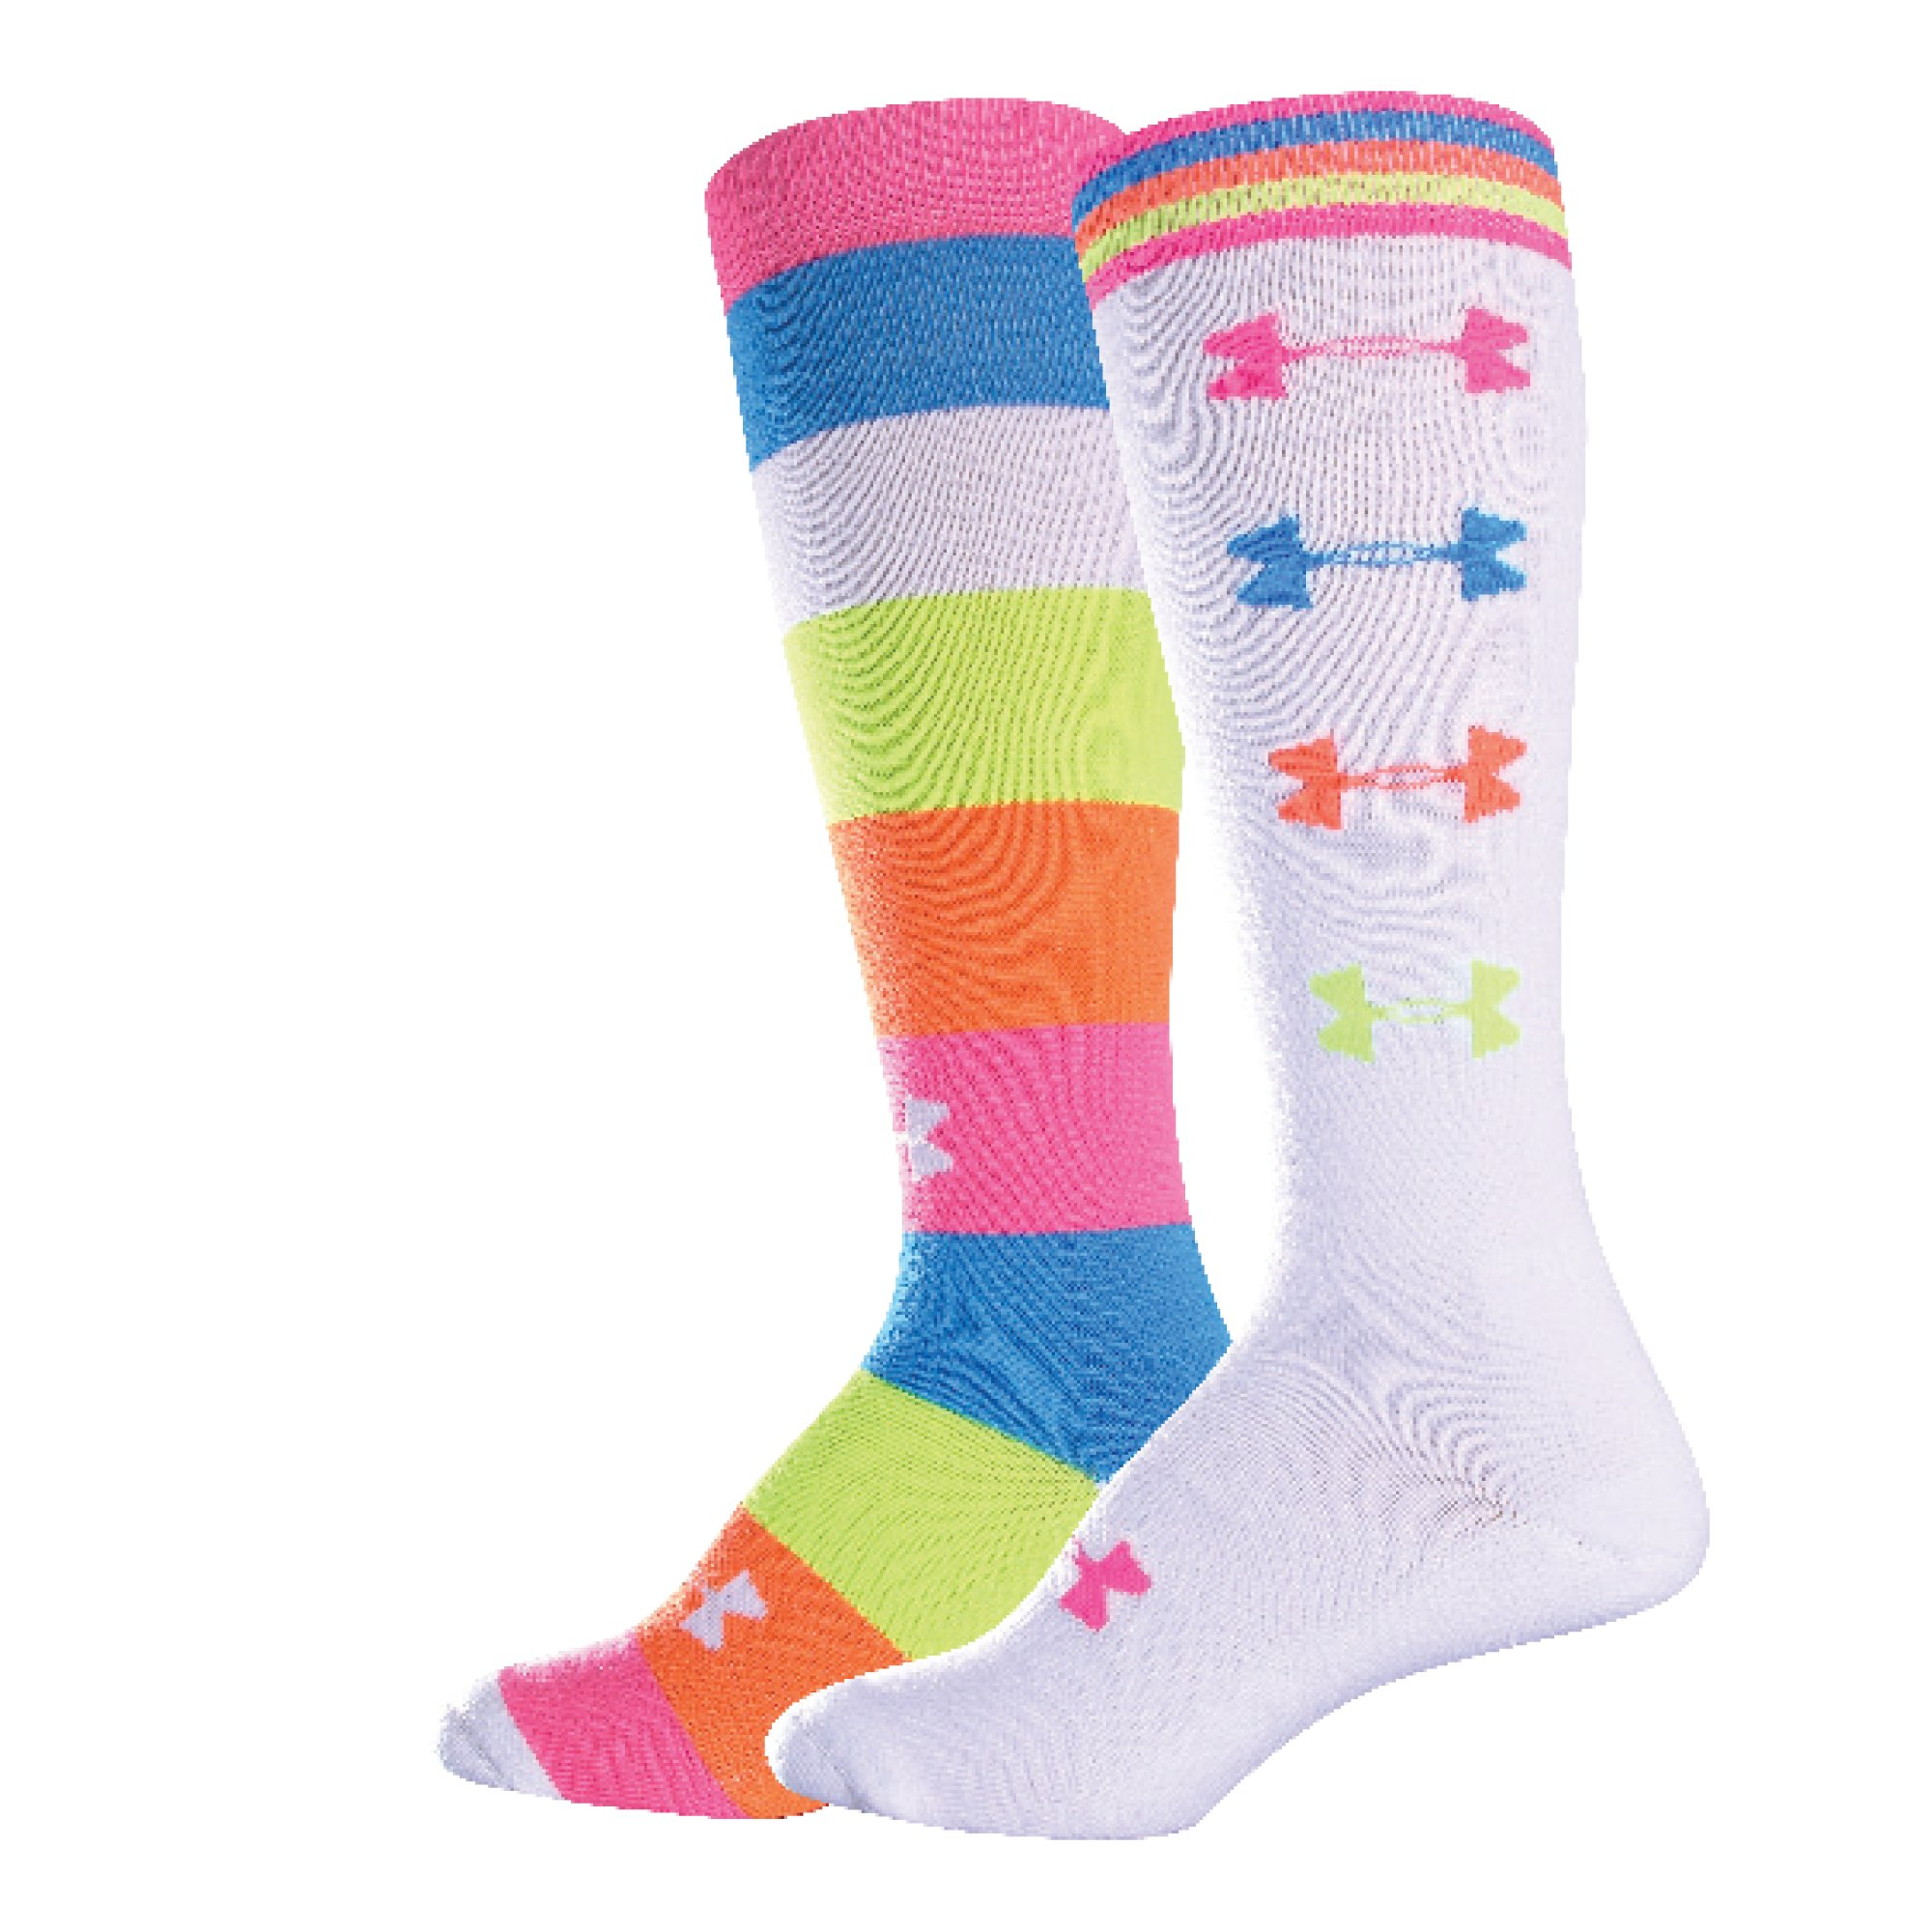 Women's Recur OTC Socks, White